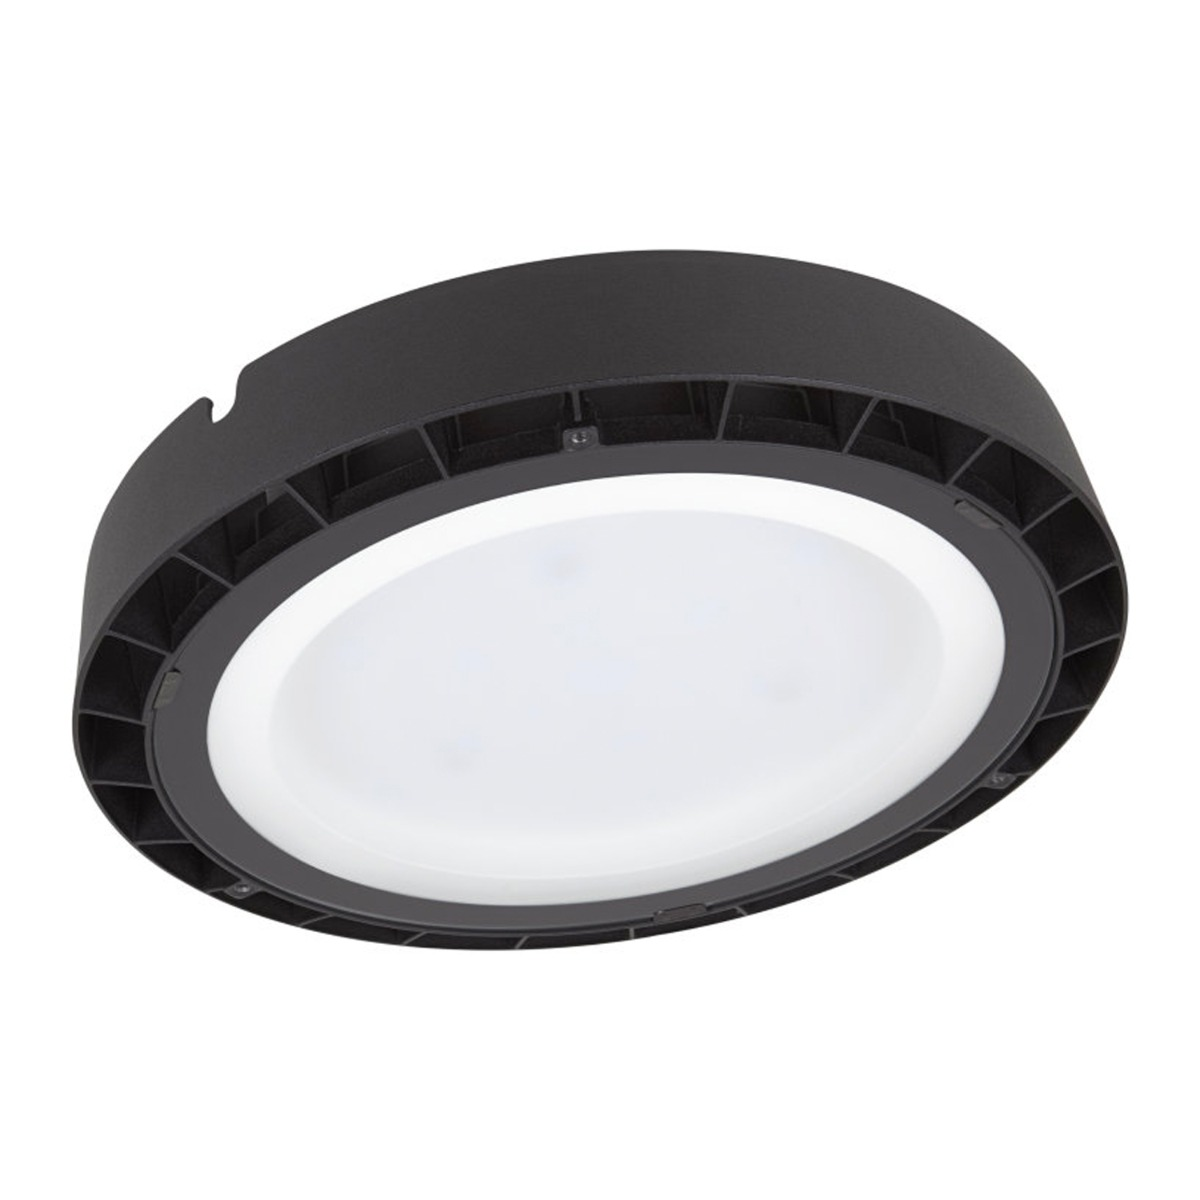 Ledvance LED High Bay Value 200W 4000K IP65 20000lm 100D | Koel Wit - Vervangt 400W